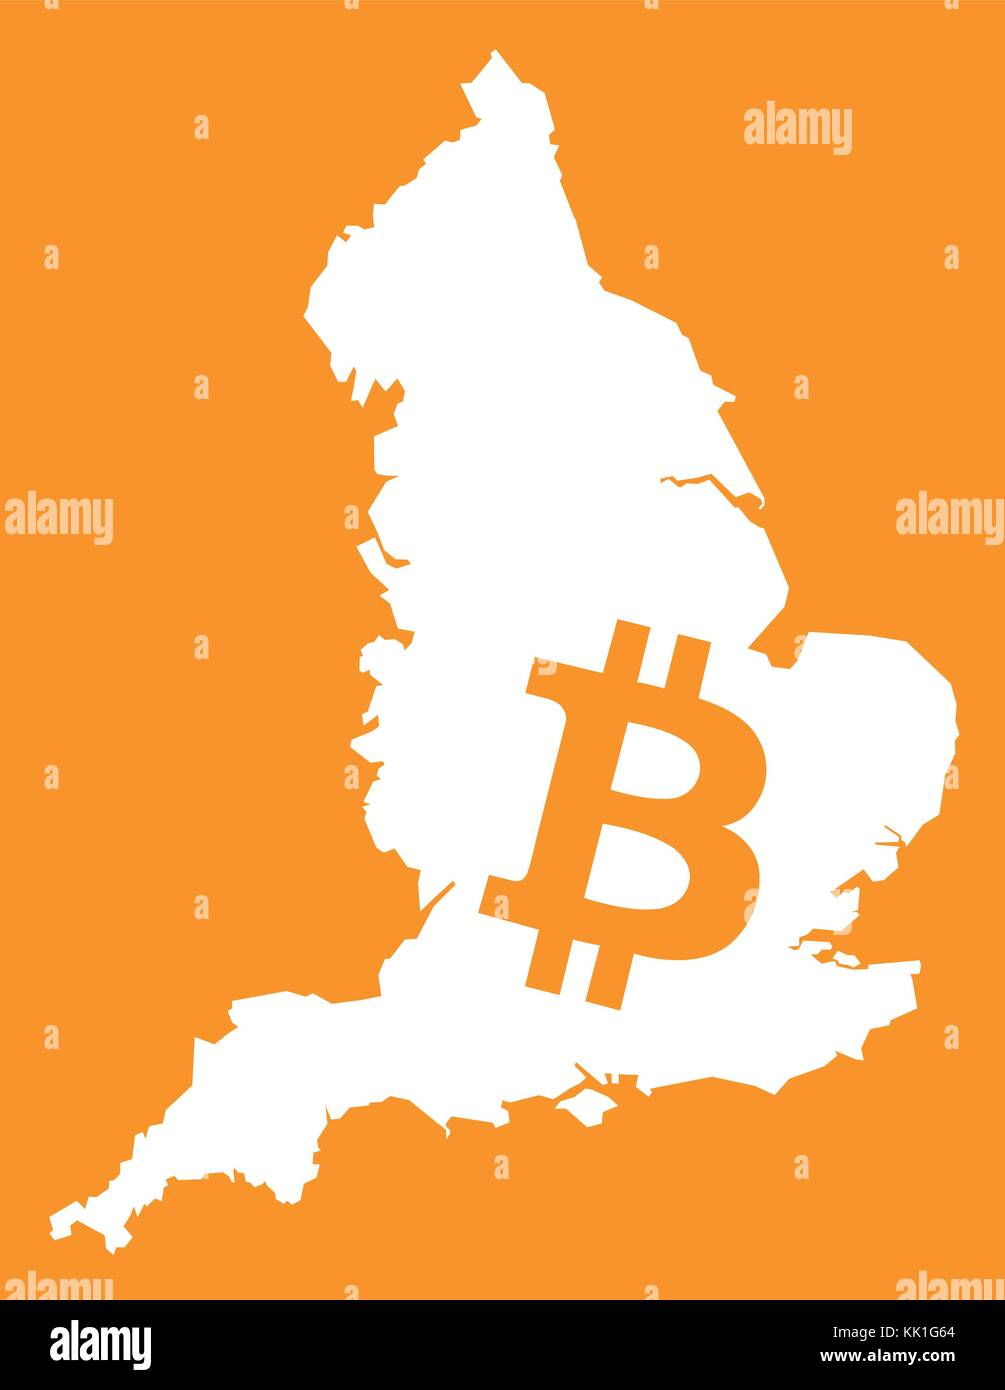 Great britain currency symbol gallery symbol and sign ideas uk currency stock vector images alamy england map with bitcoin crypto currency symbol illustration stock vector biocorpaavc Gallery